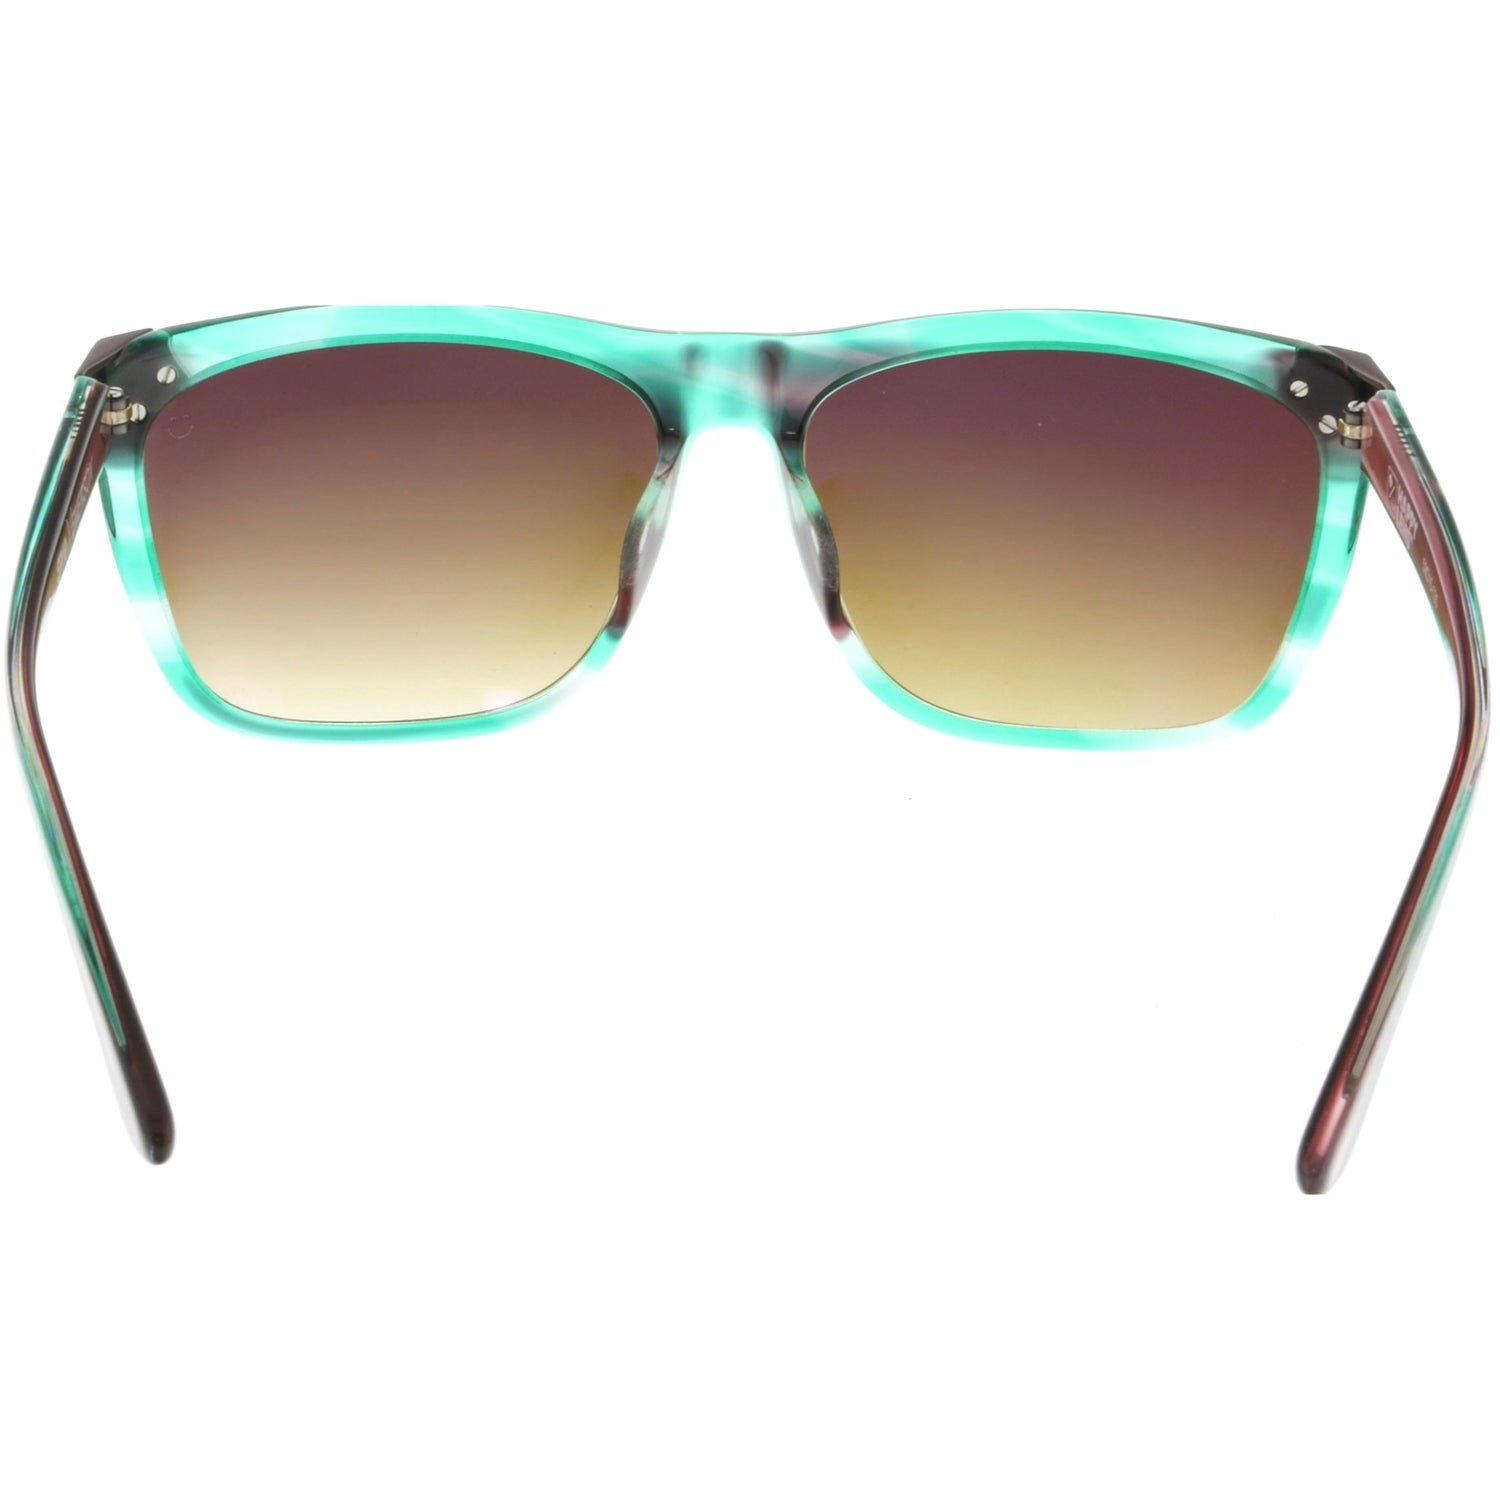 f53dbe9875 Shop Spy Gradient Emerson 673244070355 Green Clubmaster Sunglasses - Free  Shipping Today - Overstock - 19547623